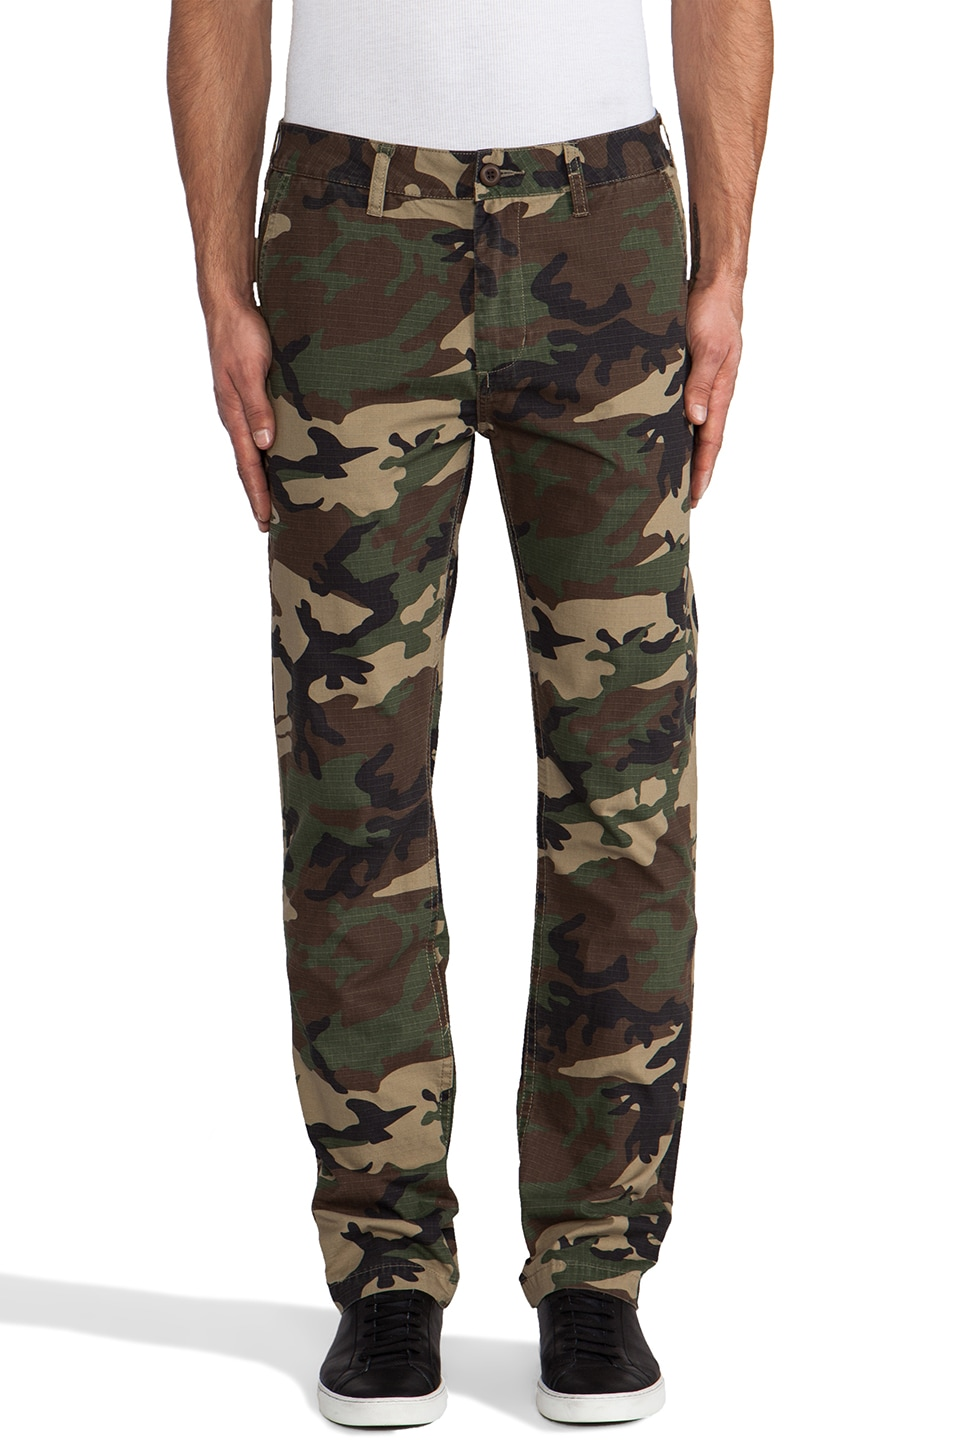 Obey Quality Dissent Recon Pant in Field Camo